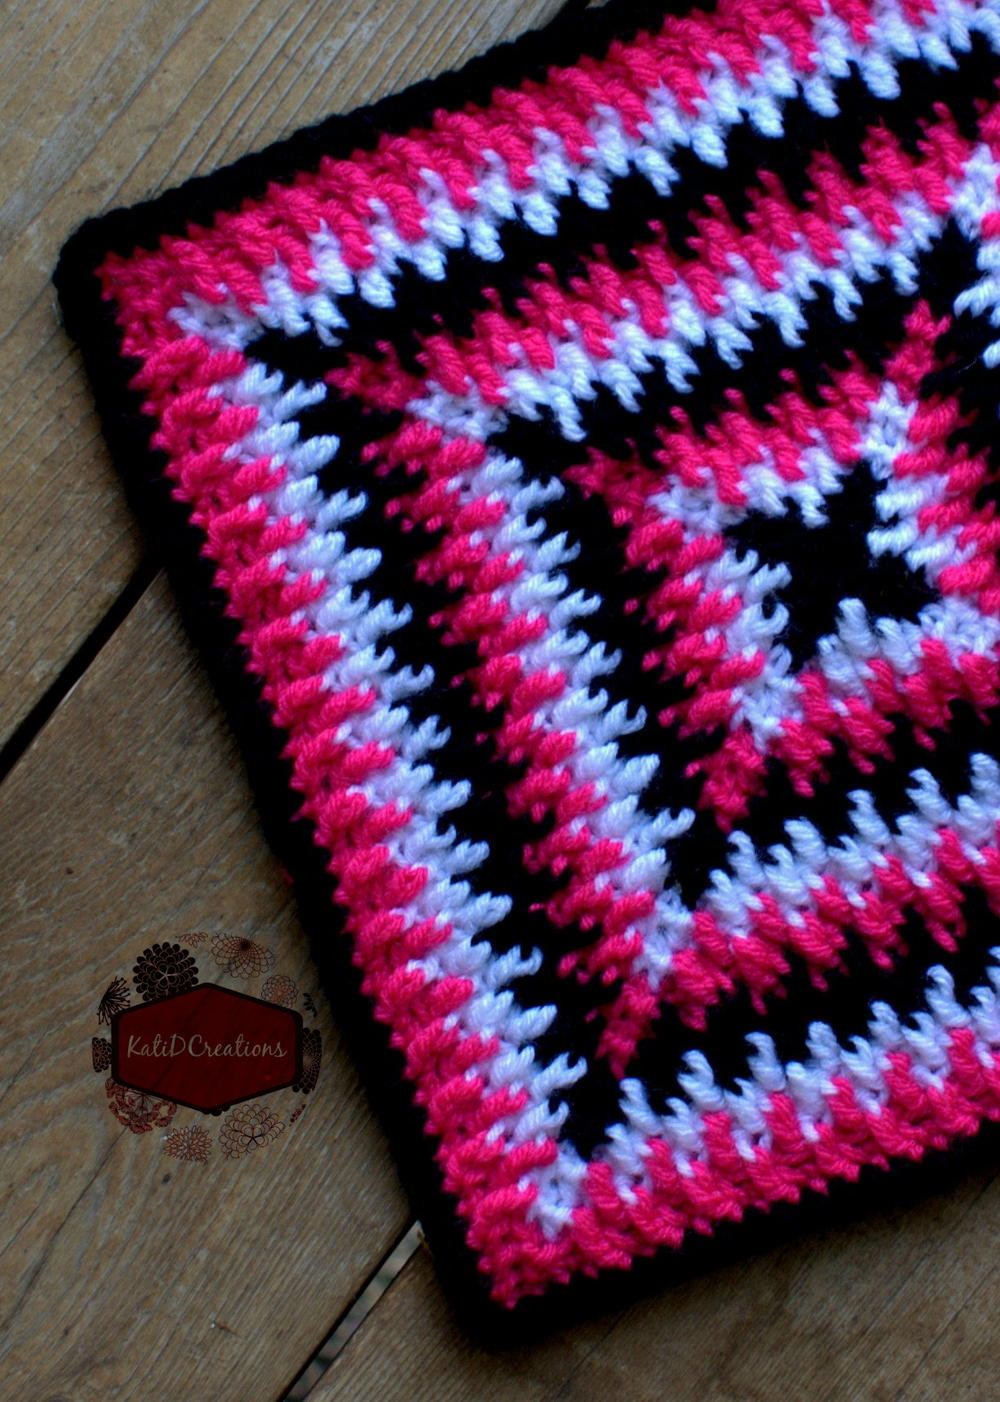 Crochet Square Patterns Luxury Mosaic Ripples Granny Square Of Marvelous 43 Photos Crochet Square Patterns